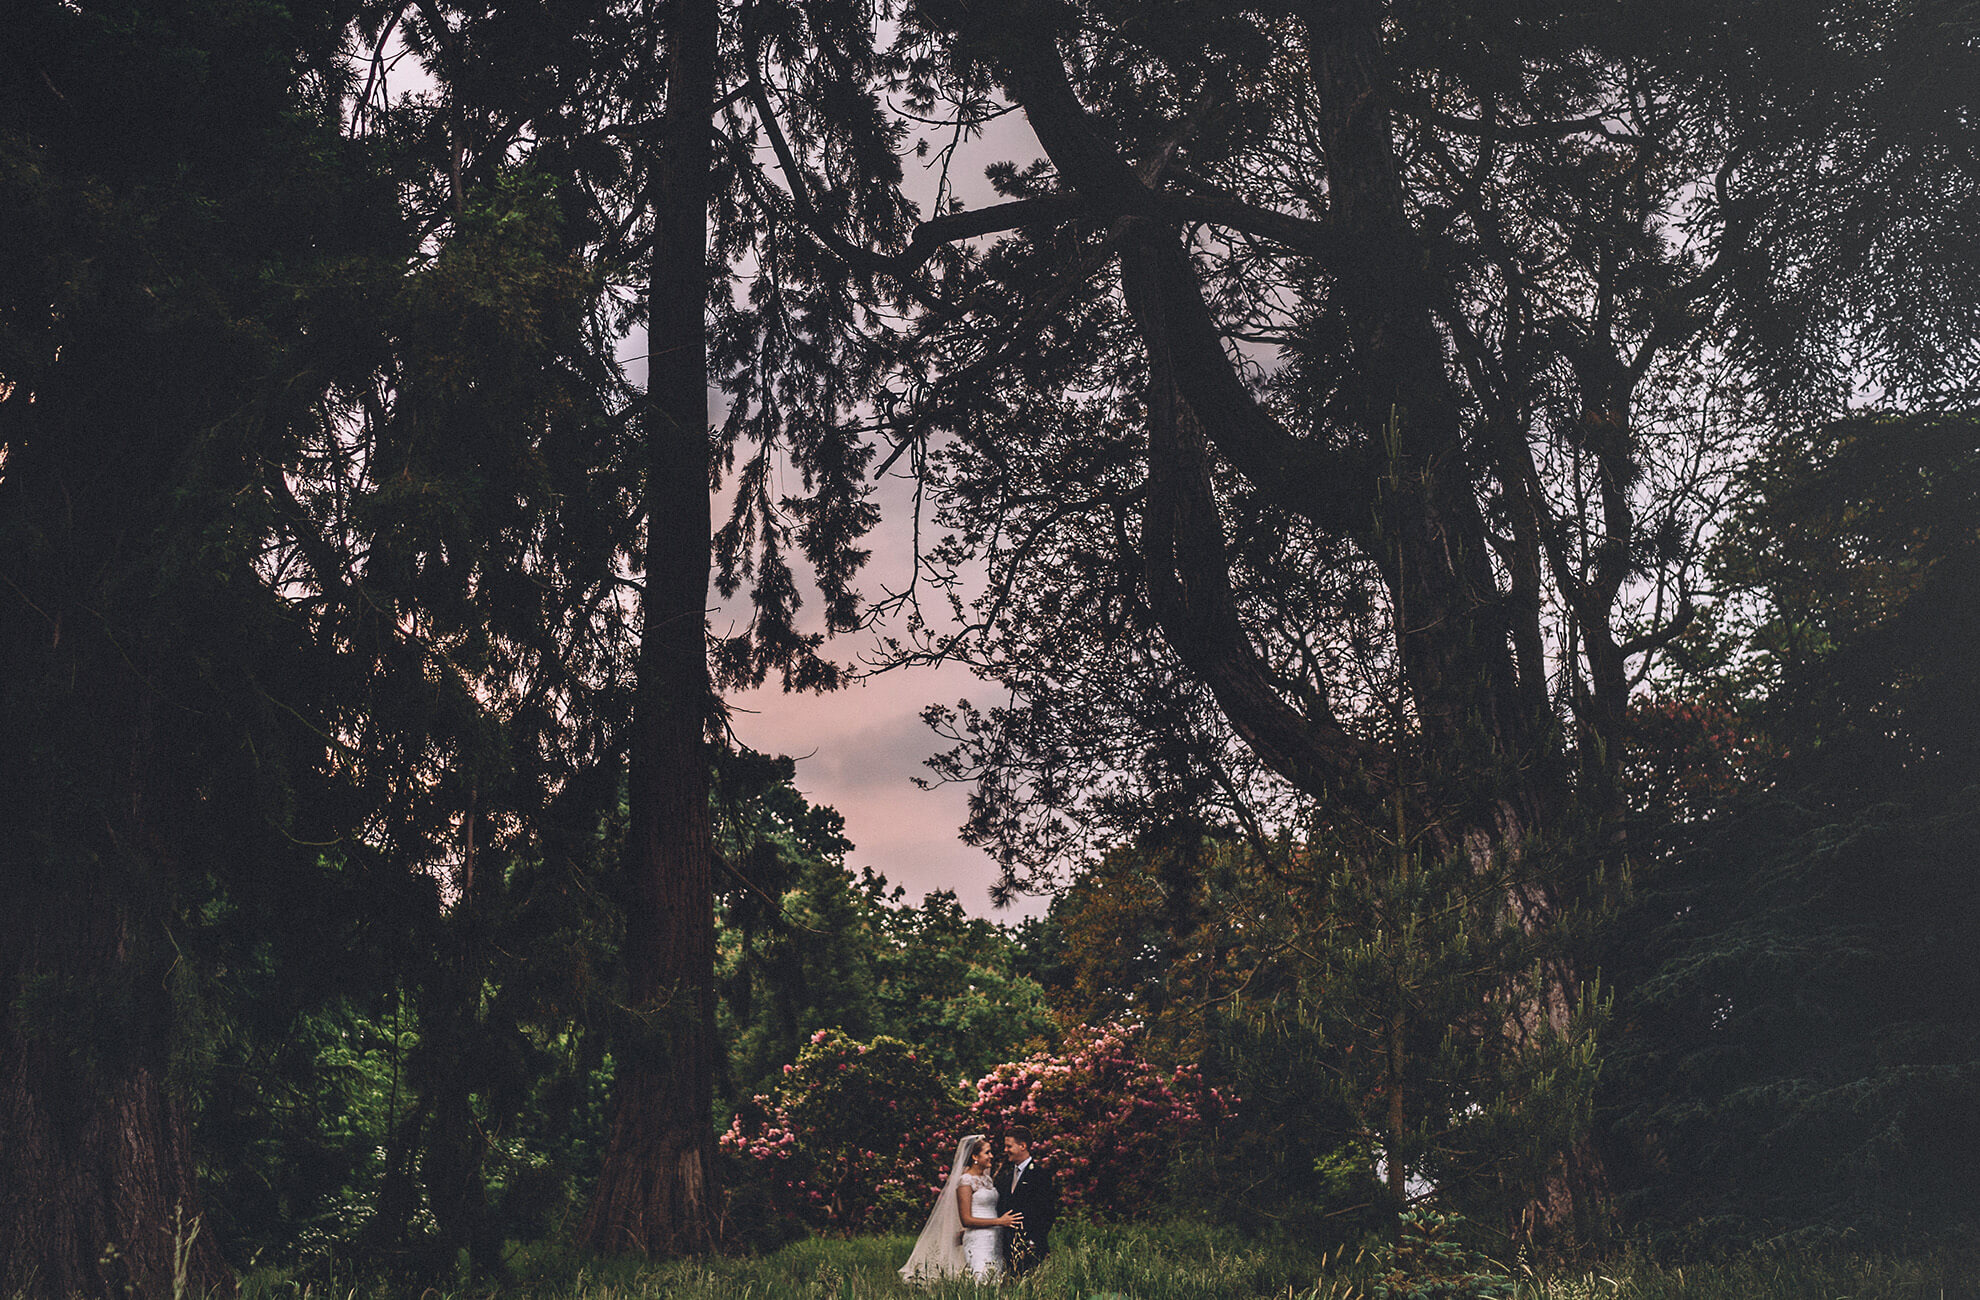 The bride and groom have a private moment on their wedding day in the woodland at this Cheshire wedding venue